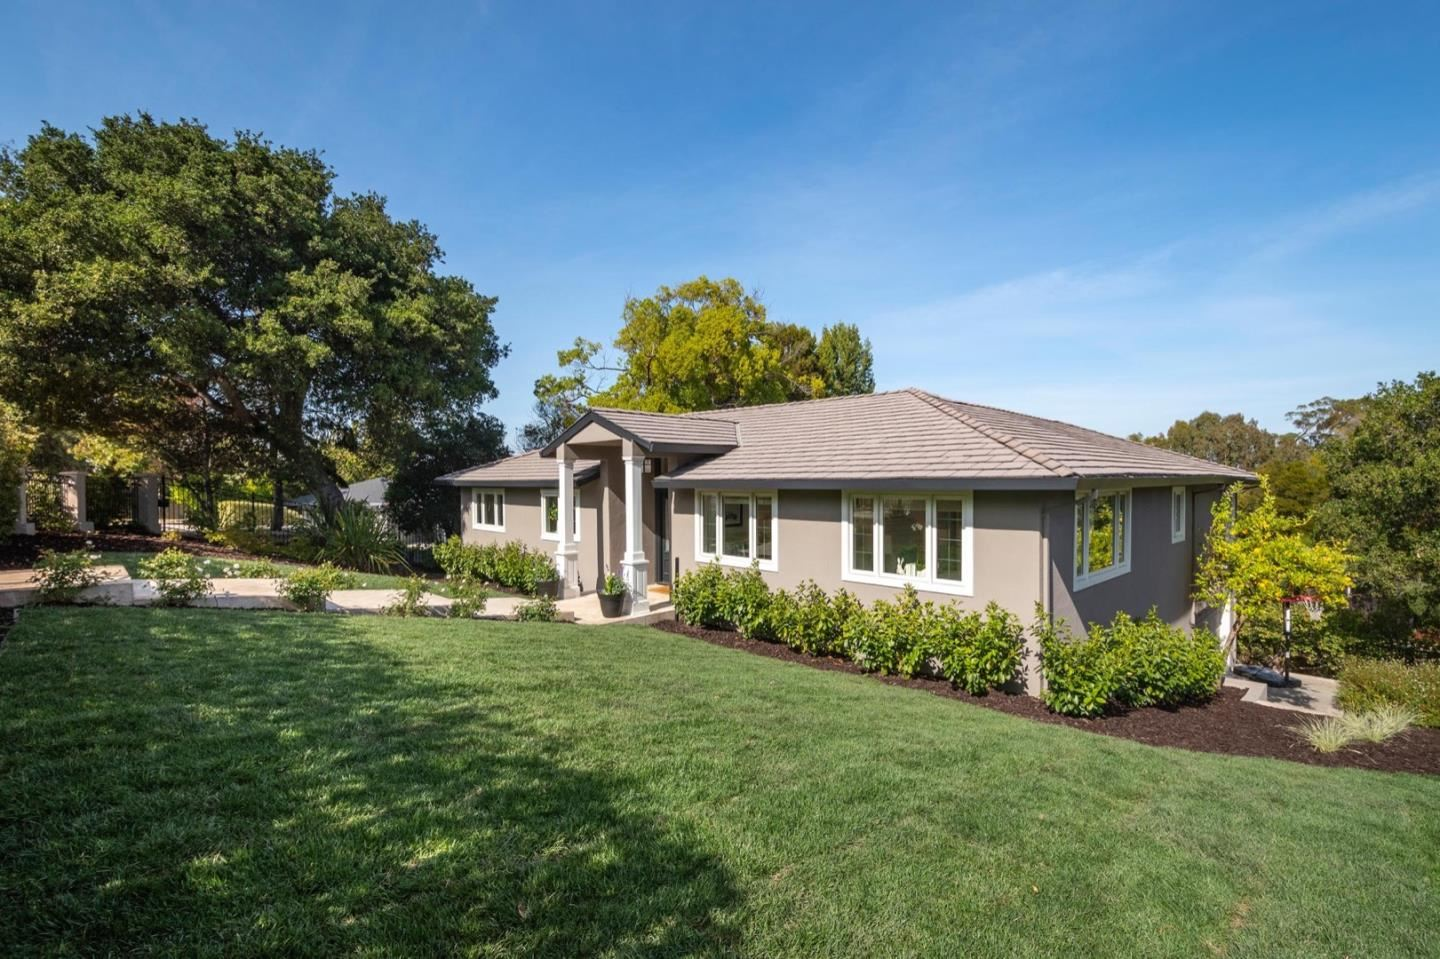 Photo for 2 Hillview Court, BURLINGAME, CA 94010 (MLS # ML81864221)